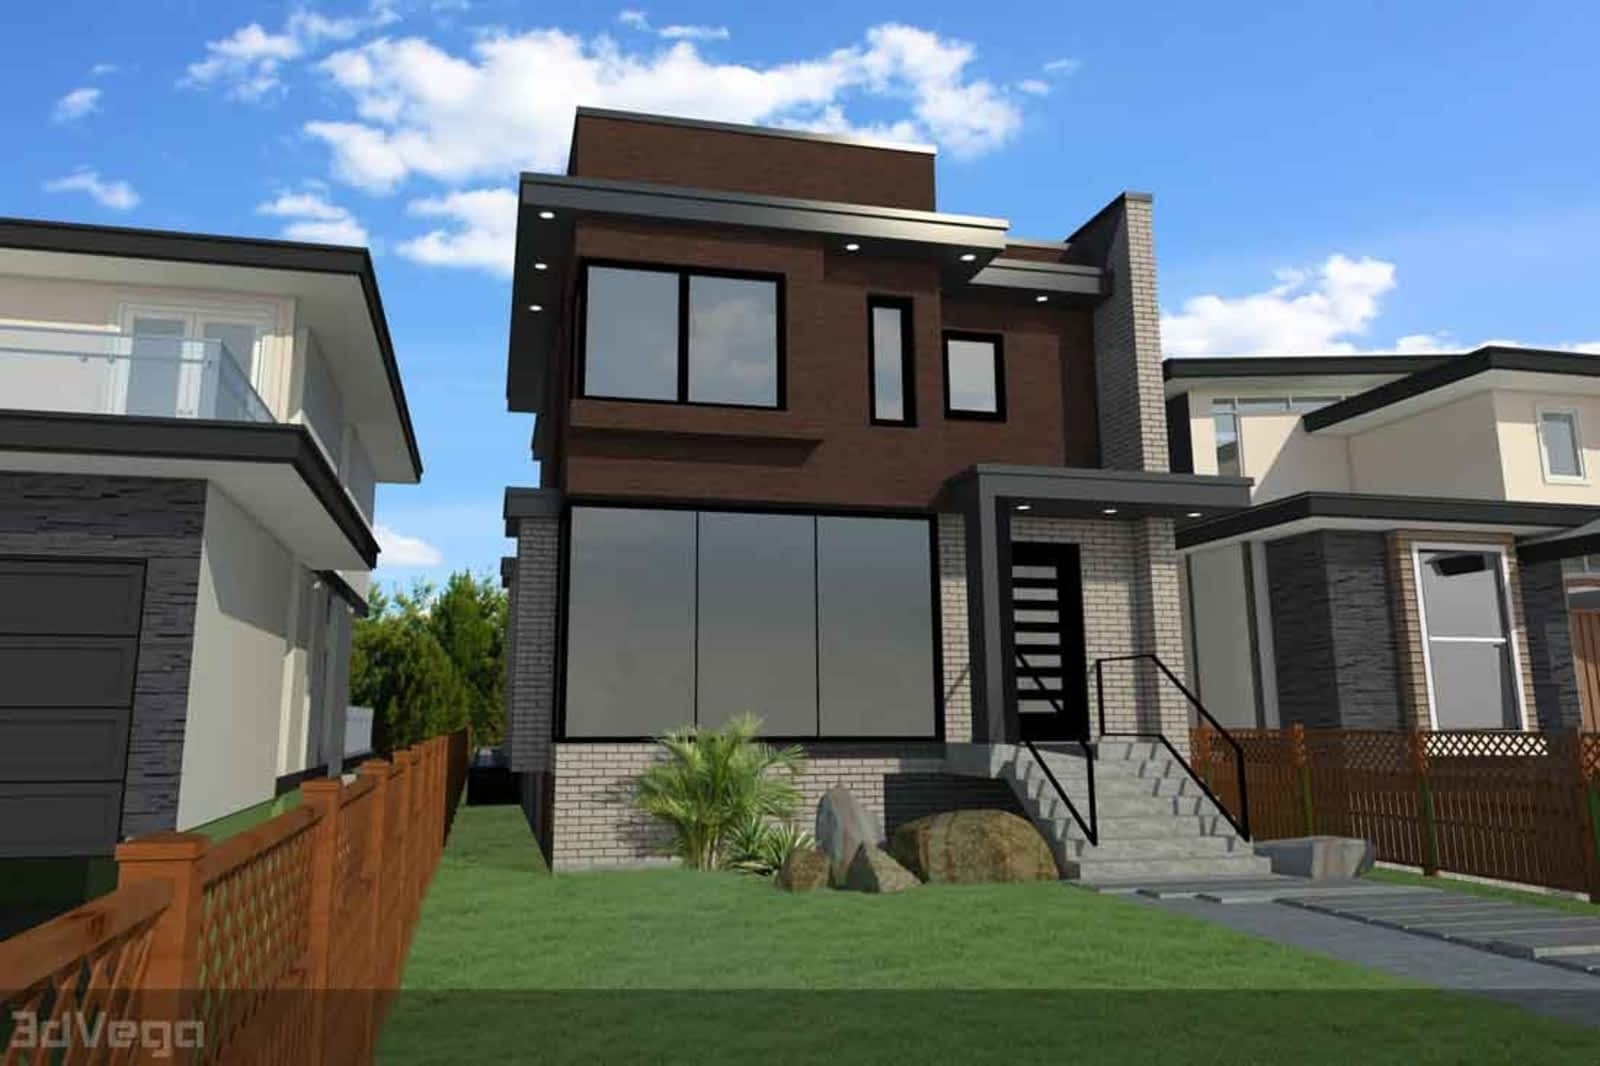 Canadian blueprint permit design drafting services opening hours canadian blueprint permit design drafting services opening hours 460 westview st coquitlam bc malvernweather Image collections